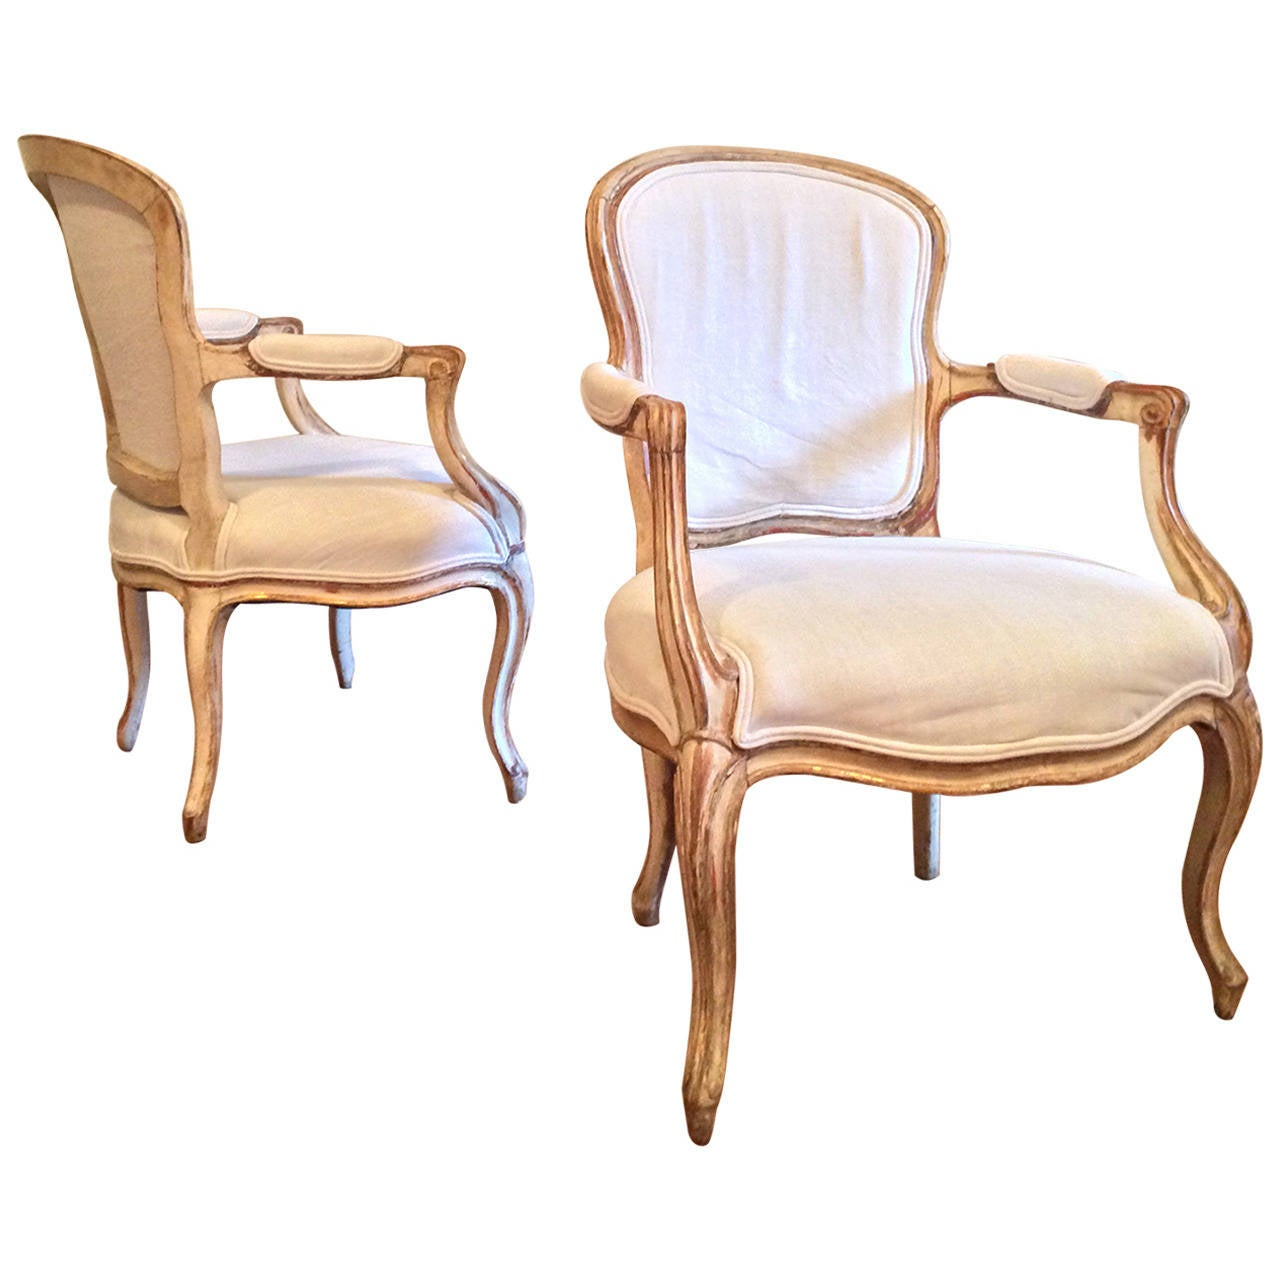 19th century pair of french louis xv style fauteuils at 1stdibs - Fauteuil style louis xv ...